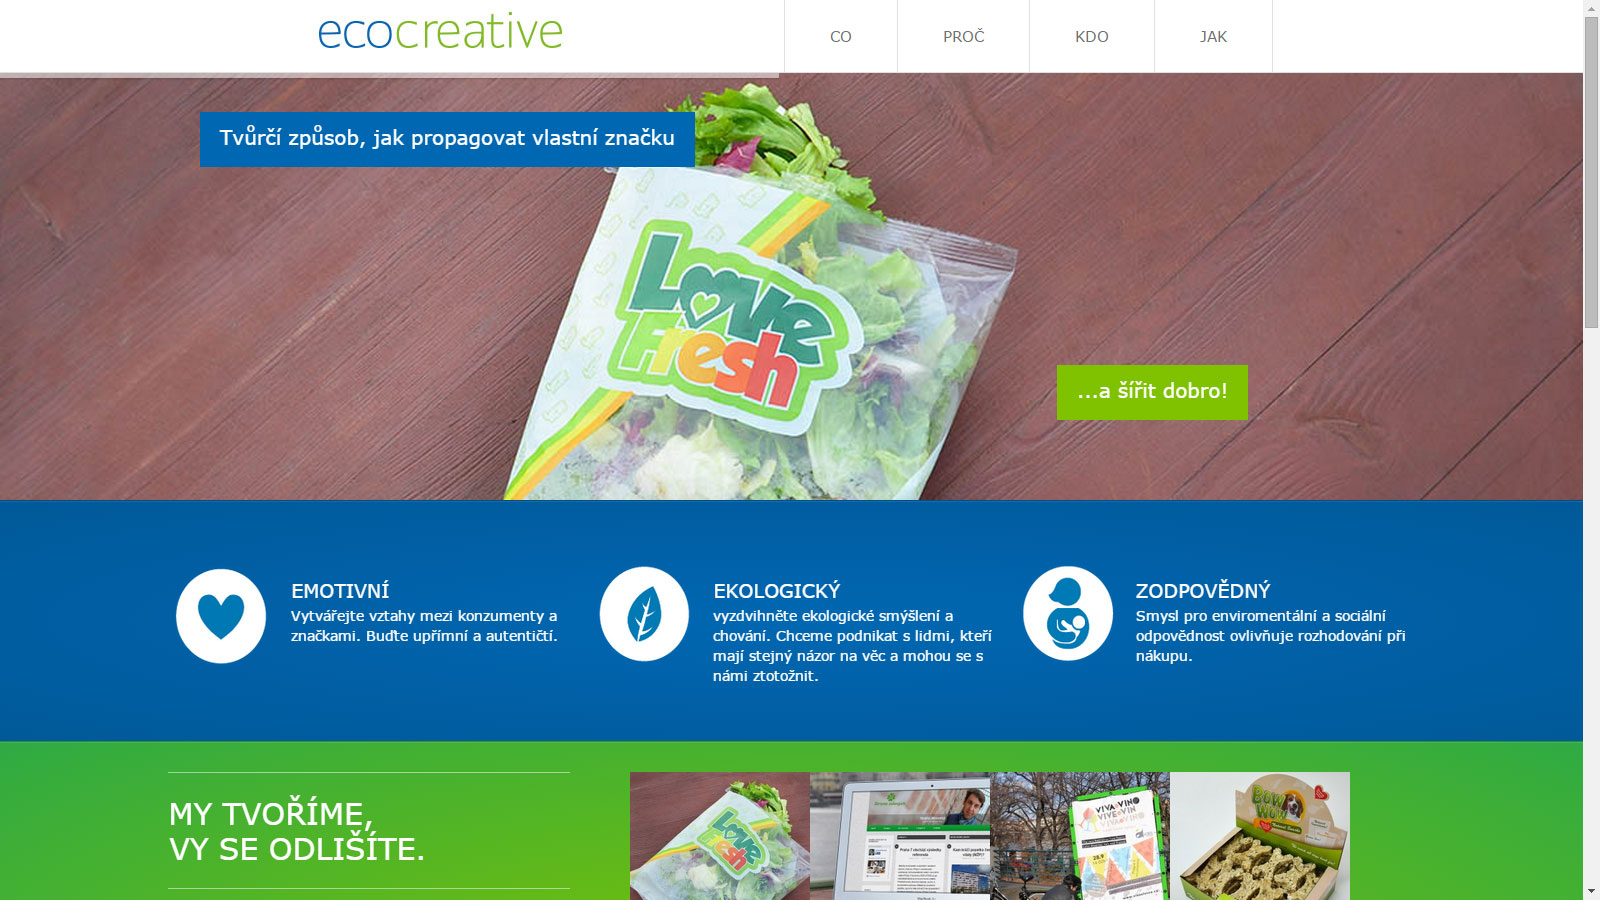 Image - Evocreative goes green